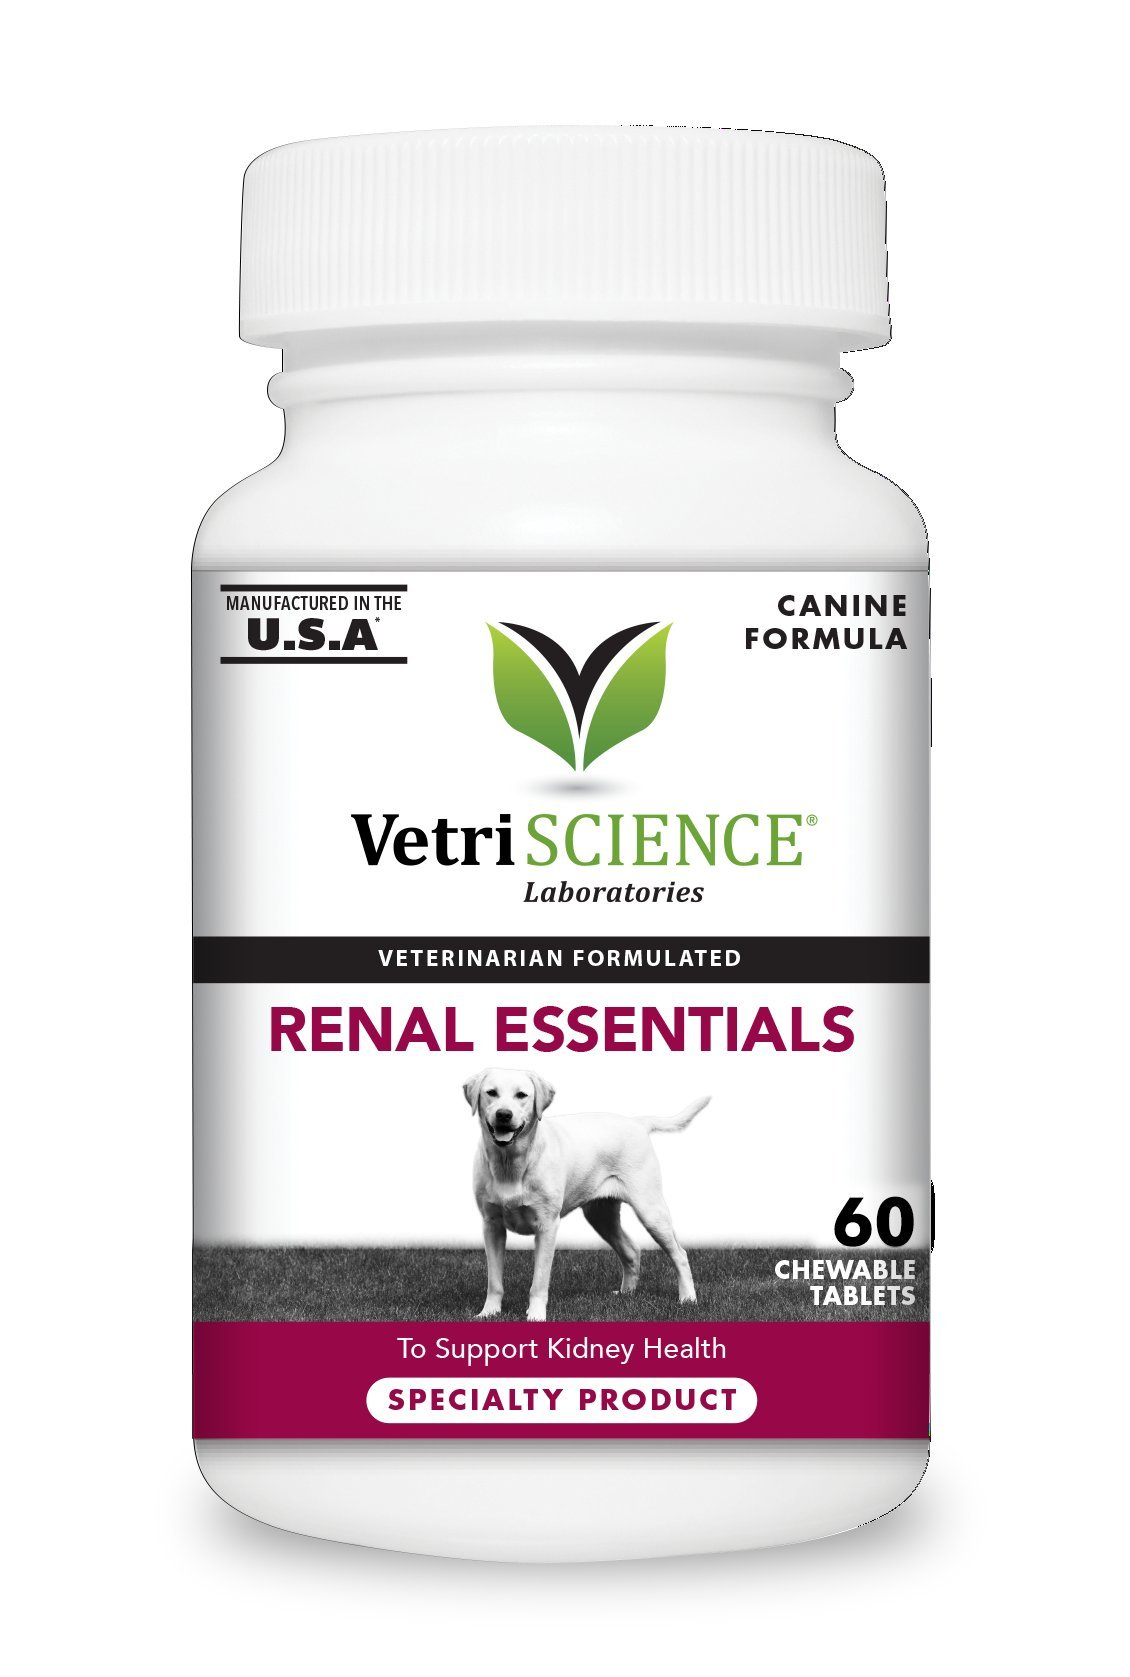 VetriScience Laboratories - Renal Essentials Kidney Health Support for Dogs, 60 Chewable Tablets by VetriScience Laboratories